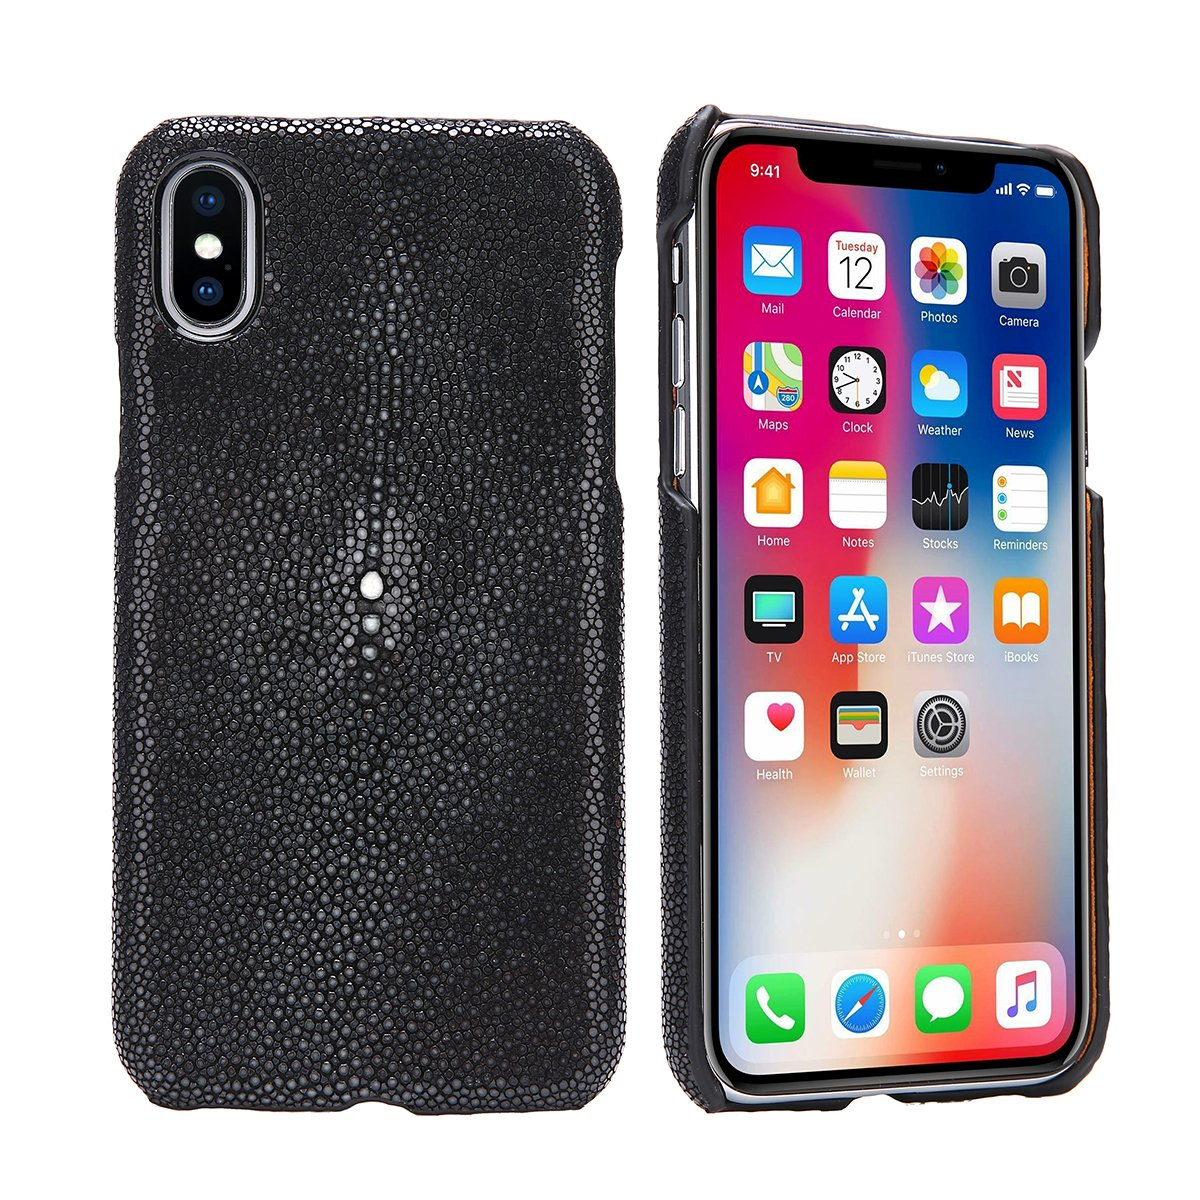 Luxury Case for iPhone X Hand Made from Genuine Stingray Fish Skin Superior Quality Bumper Case for iPhone X (Stingray Edition - Gentlemen Black)